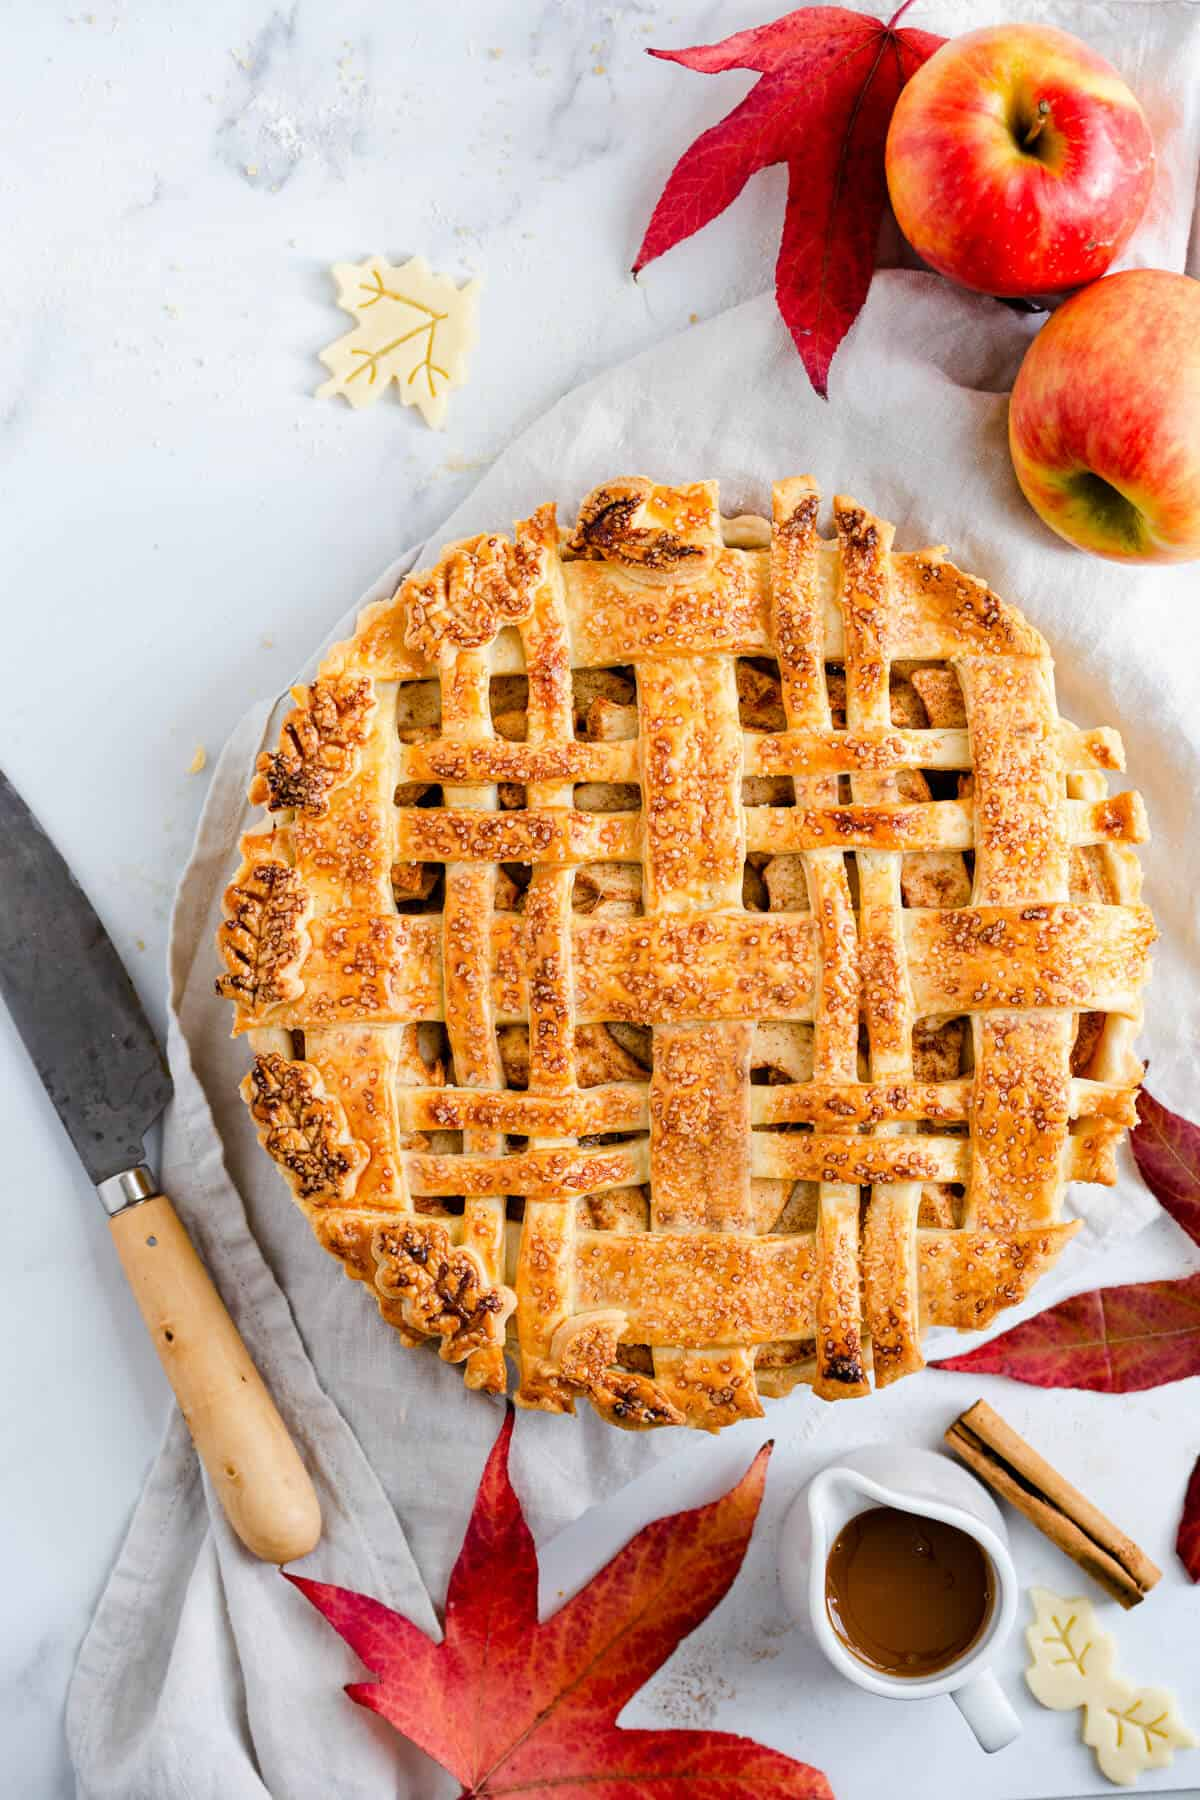 Vegan apple pie with caramel sauce. Delicious recipe for the autumn classic #vegan #apple pie | via @annabanana.co